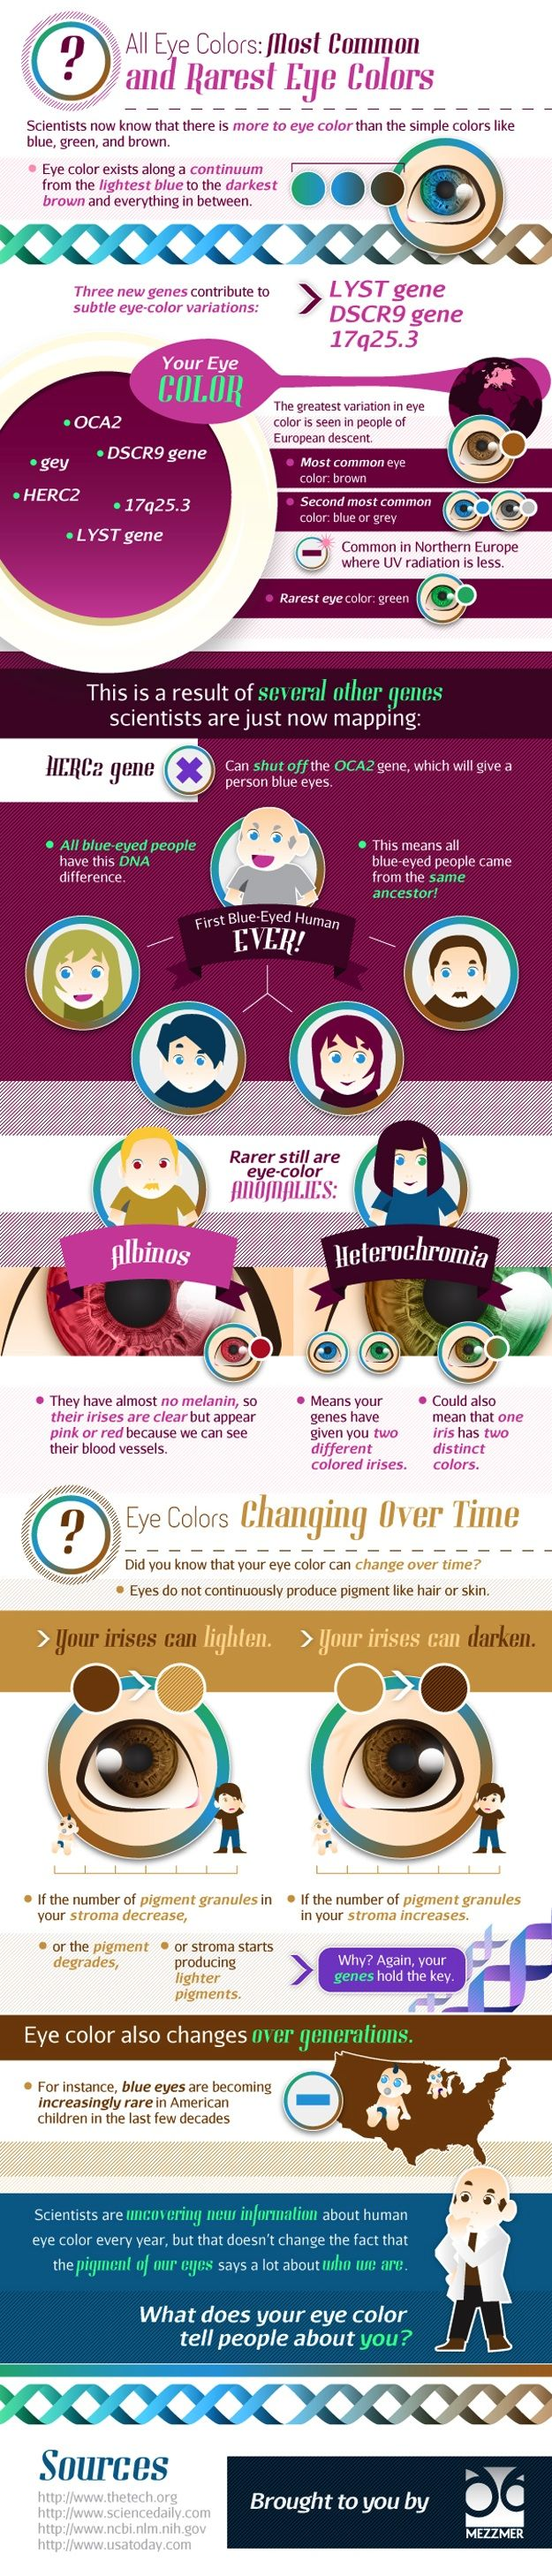 Eye Color What Does Your Eye Color Say About You Eyehealth